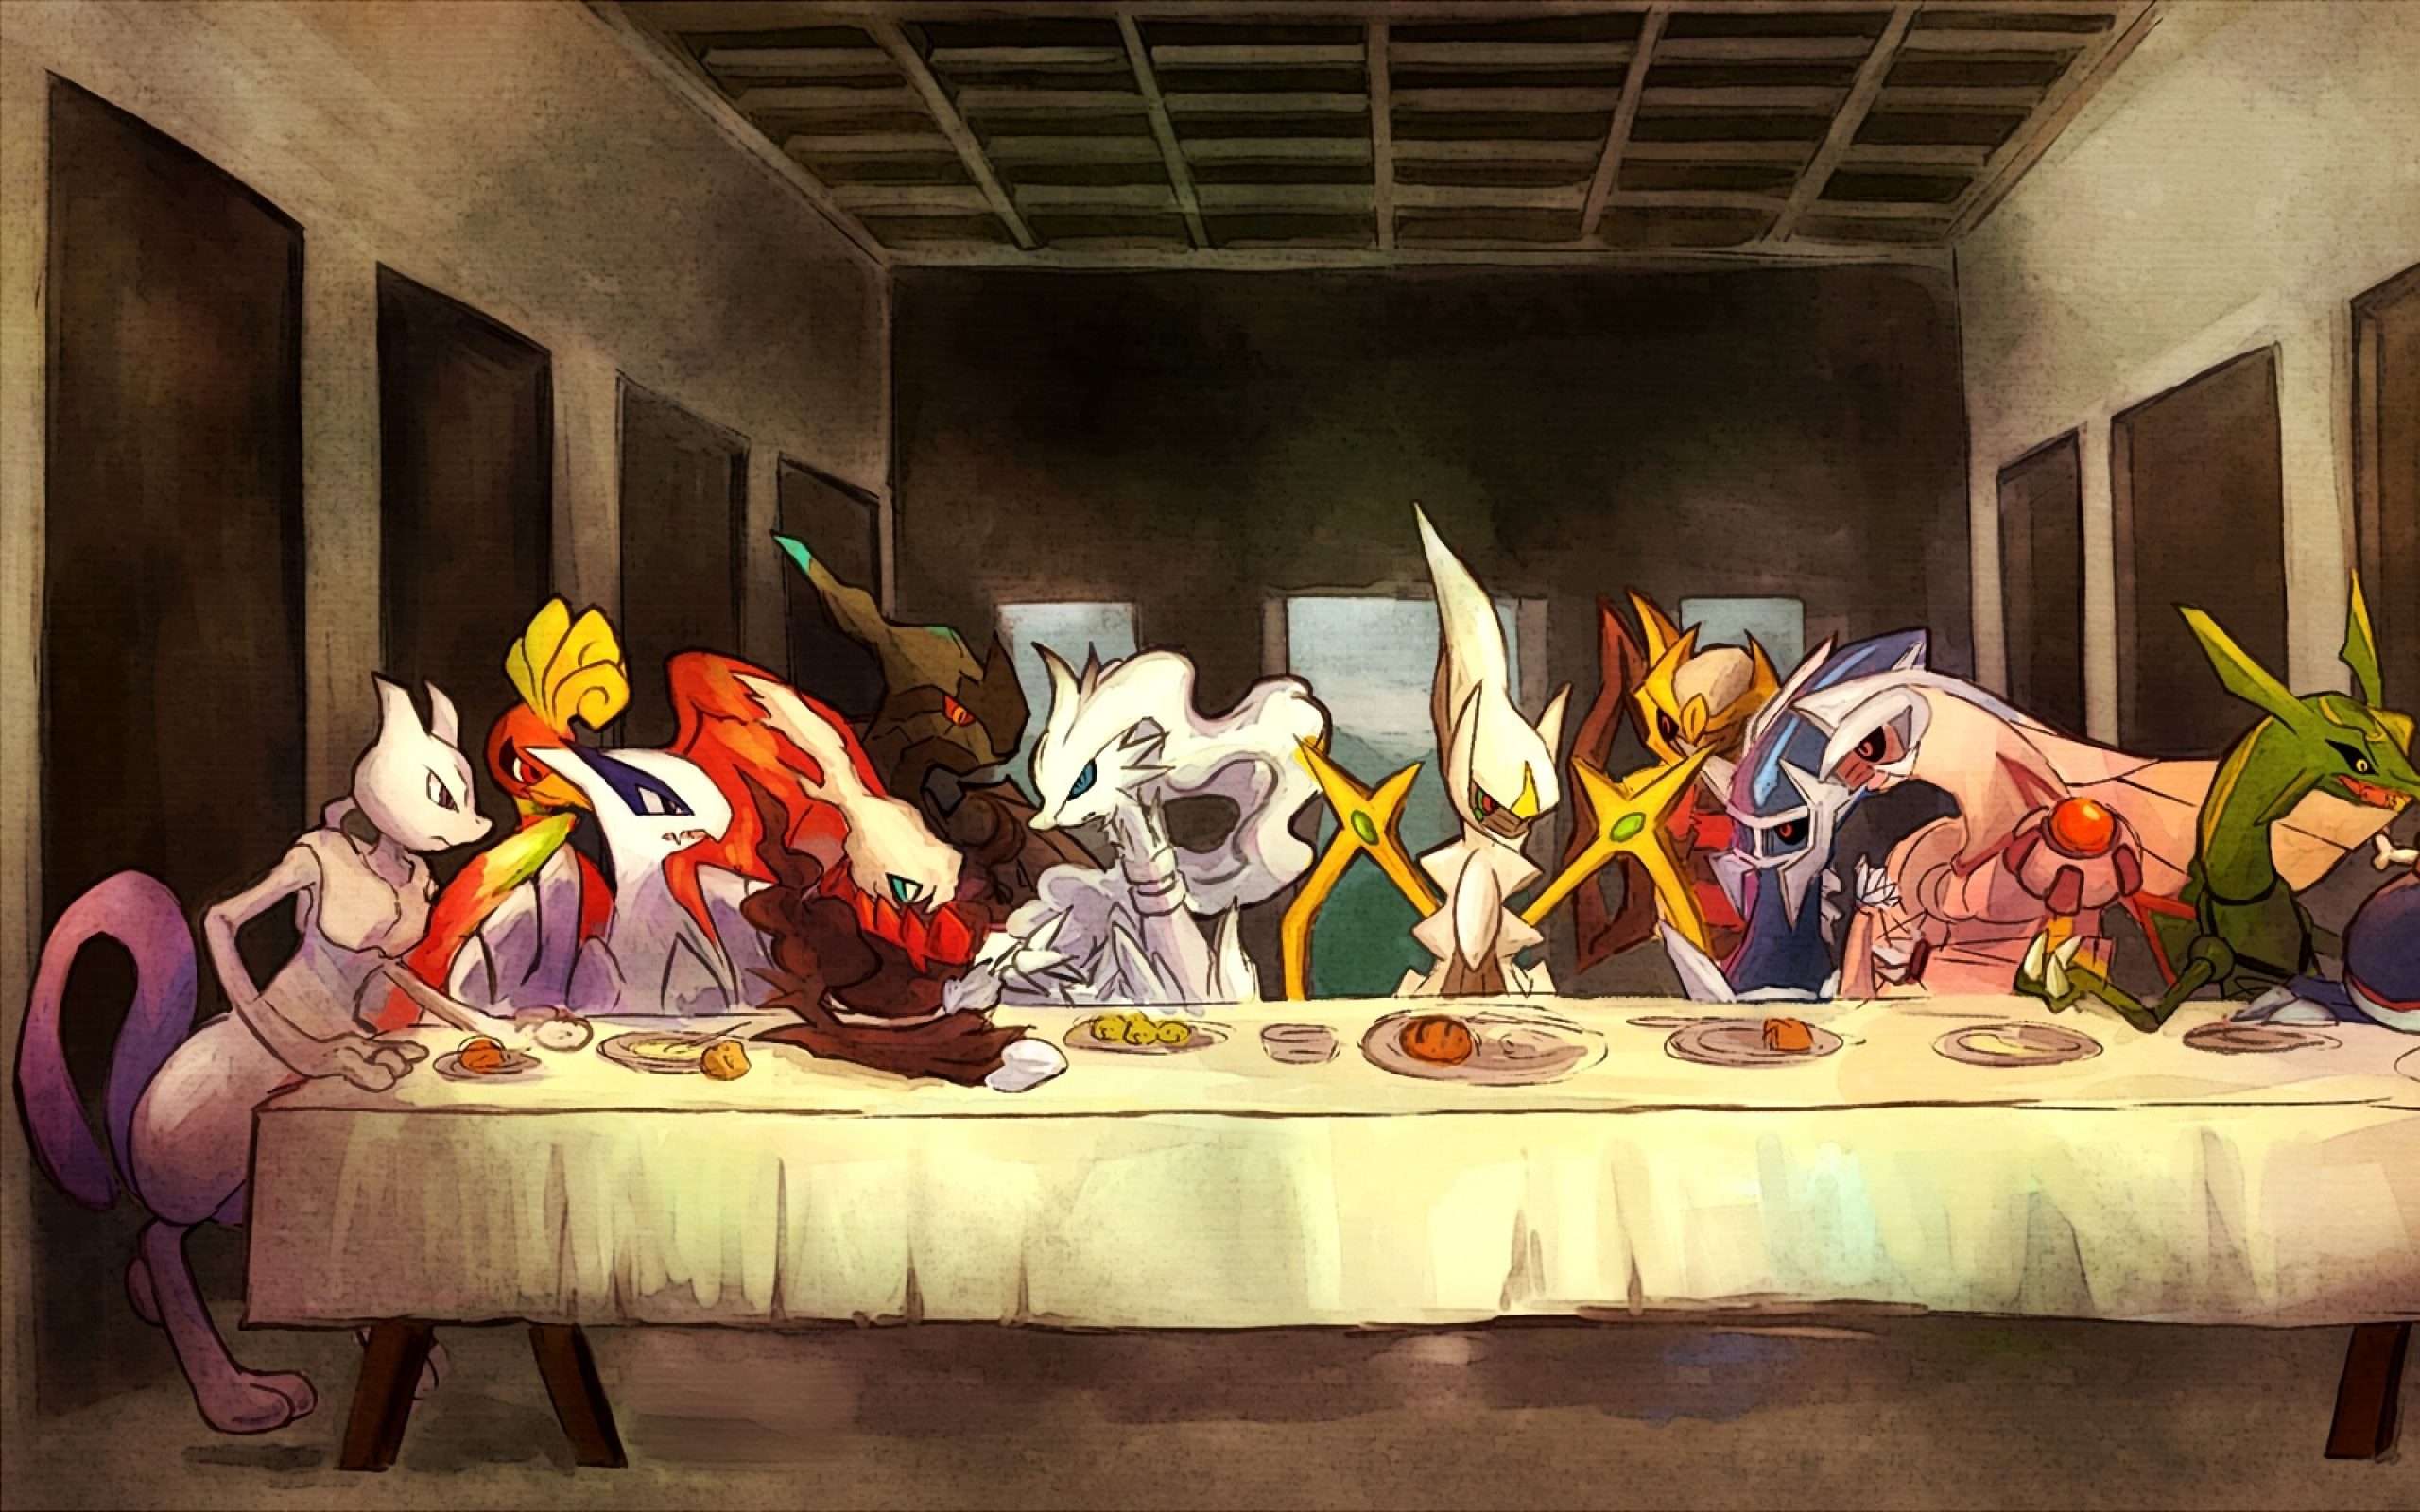 last supper parody crossovers 1955x1000 wallpaper Wallpaper 2560x1600